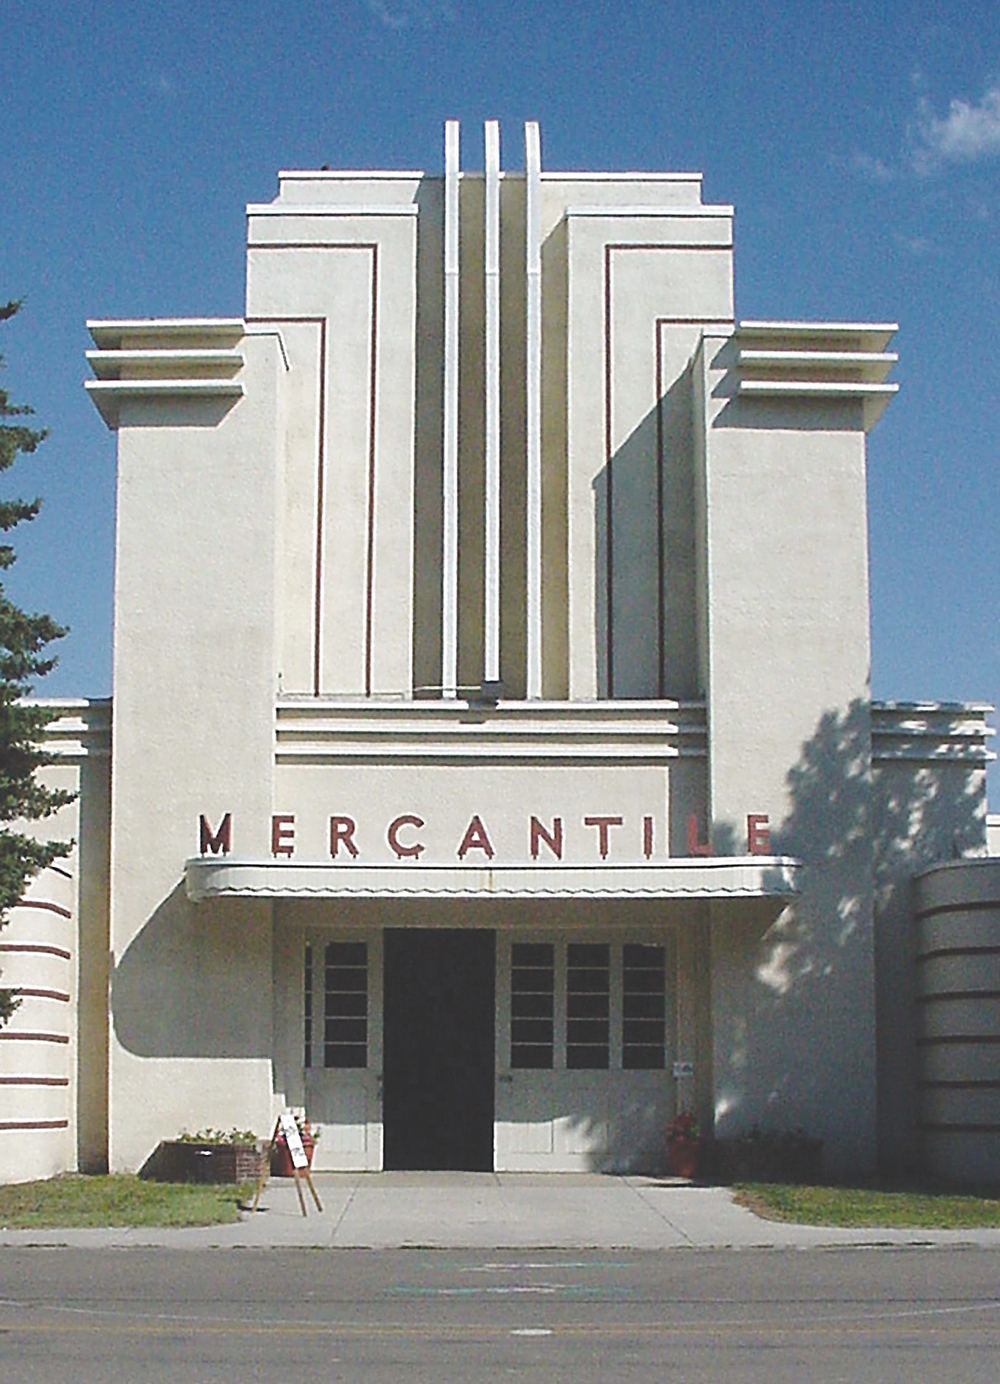 The Mercantile building shows off a great example of Art Deco design at the Montana ExpoPark, formerly known as the fairgrounds. Photo by Ben Chovanak.